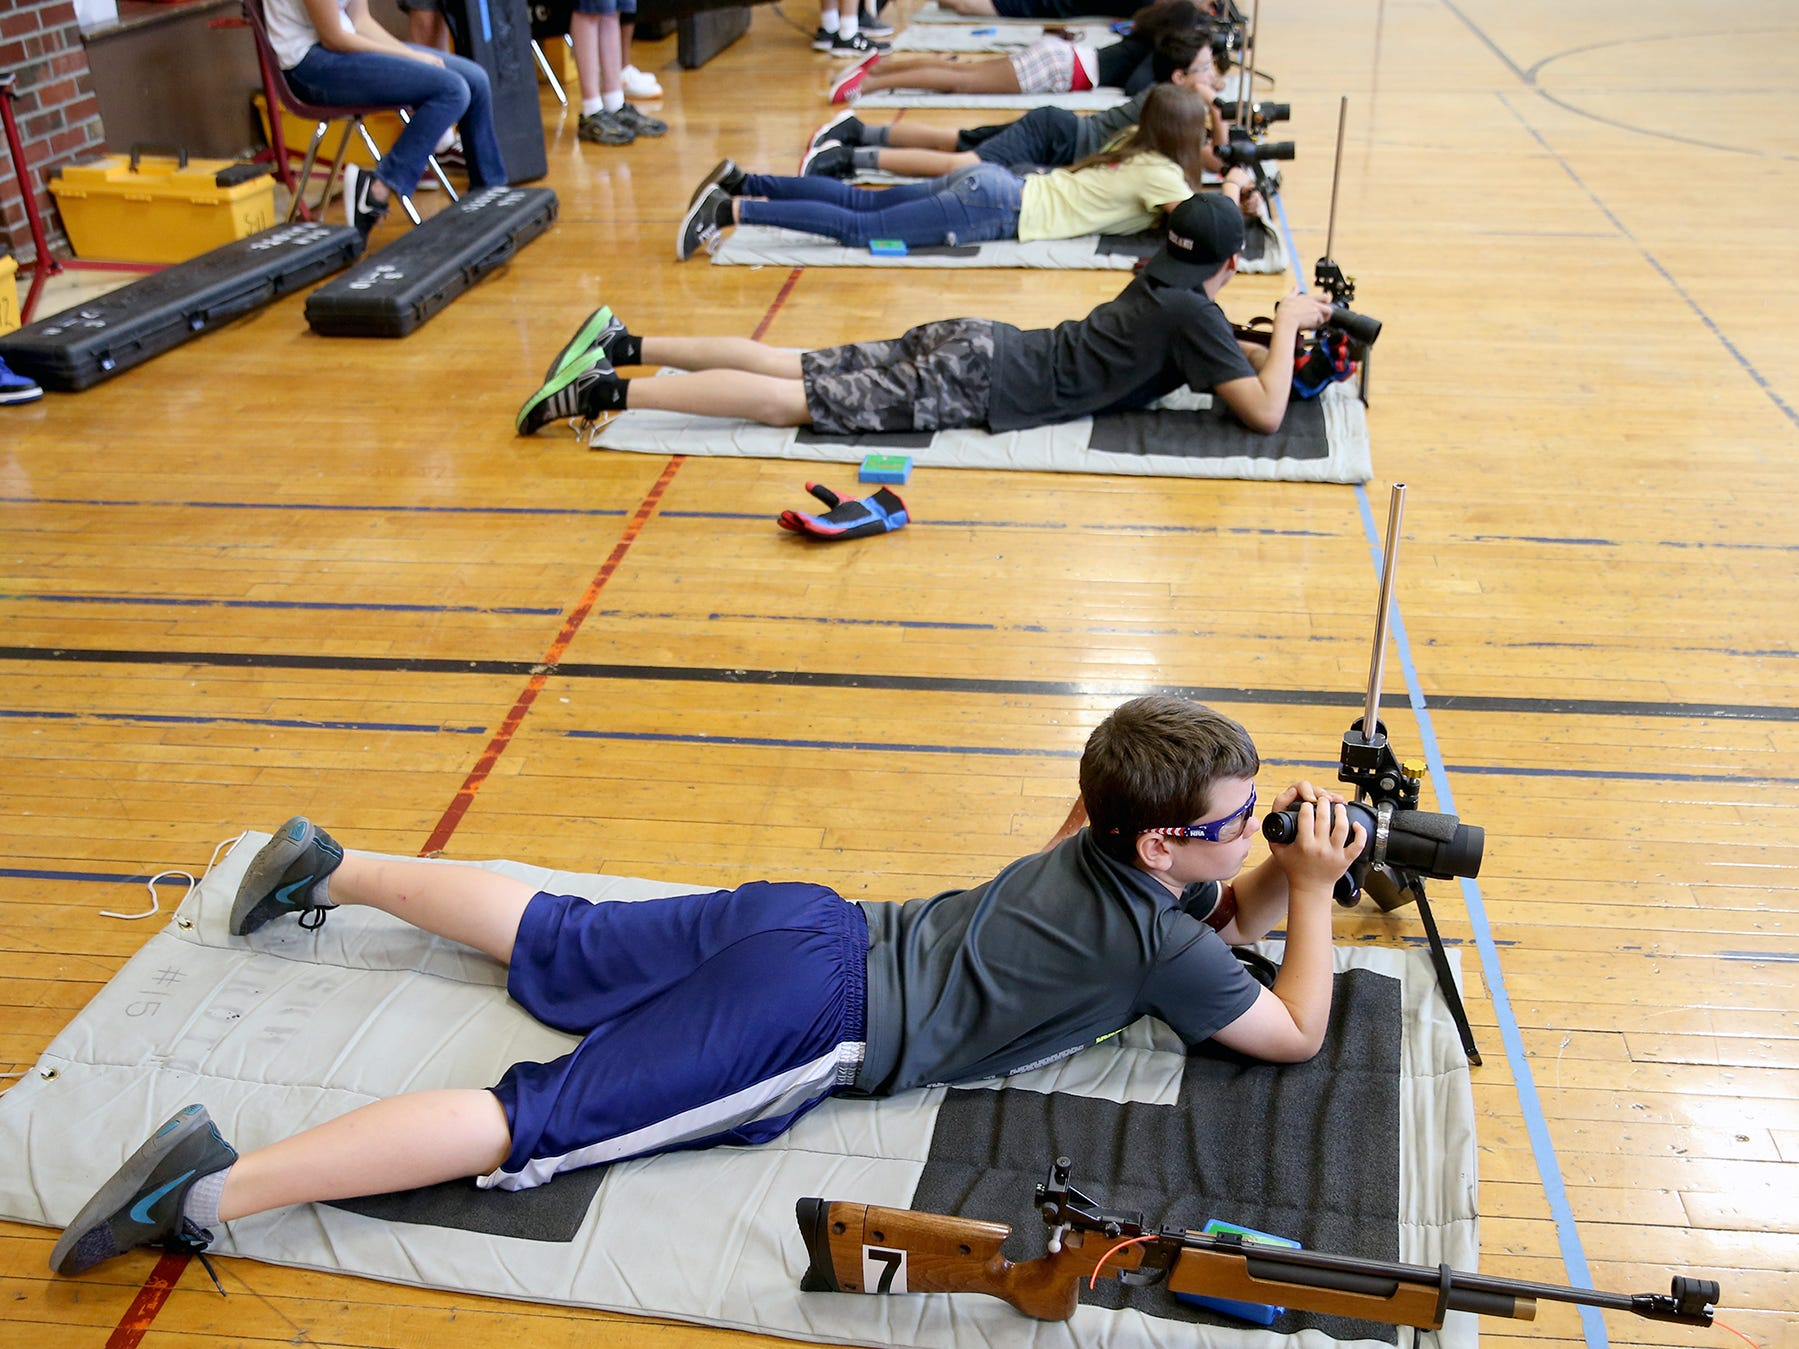 Tyce Outhwaite, 9, of Port Orchard checks the target to shoot at the South Kitsap High School NJROTC Wolf Battalion Rifle Camp runs from August 8-10, at the National Guard Armory in Port Orchard.The camp teaches rifle safety, and shooting technics.